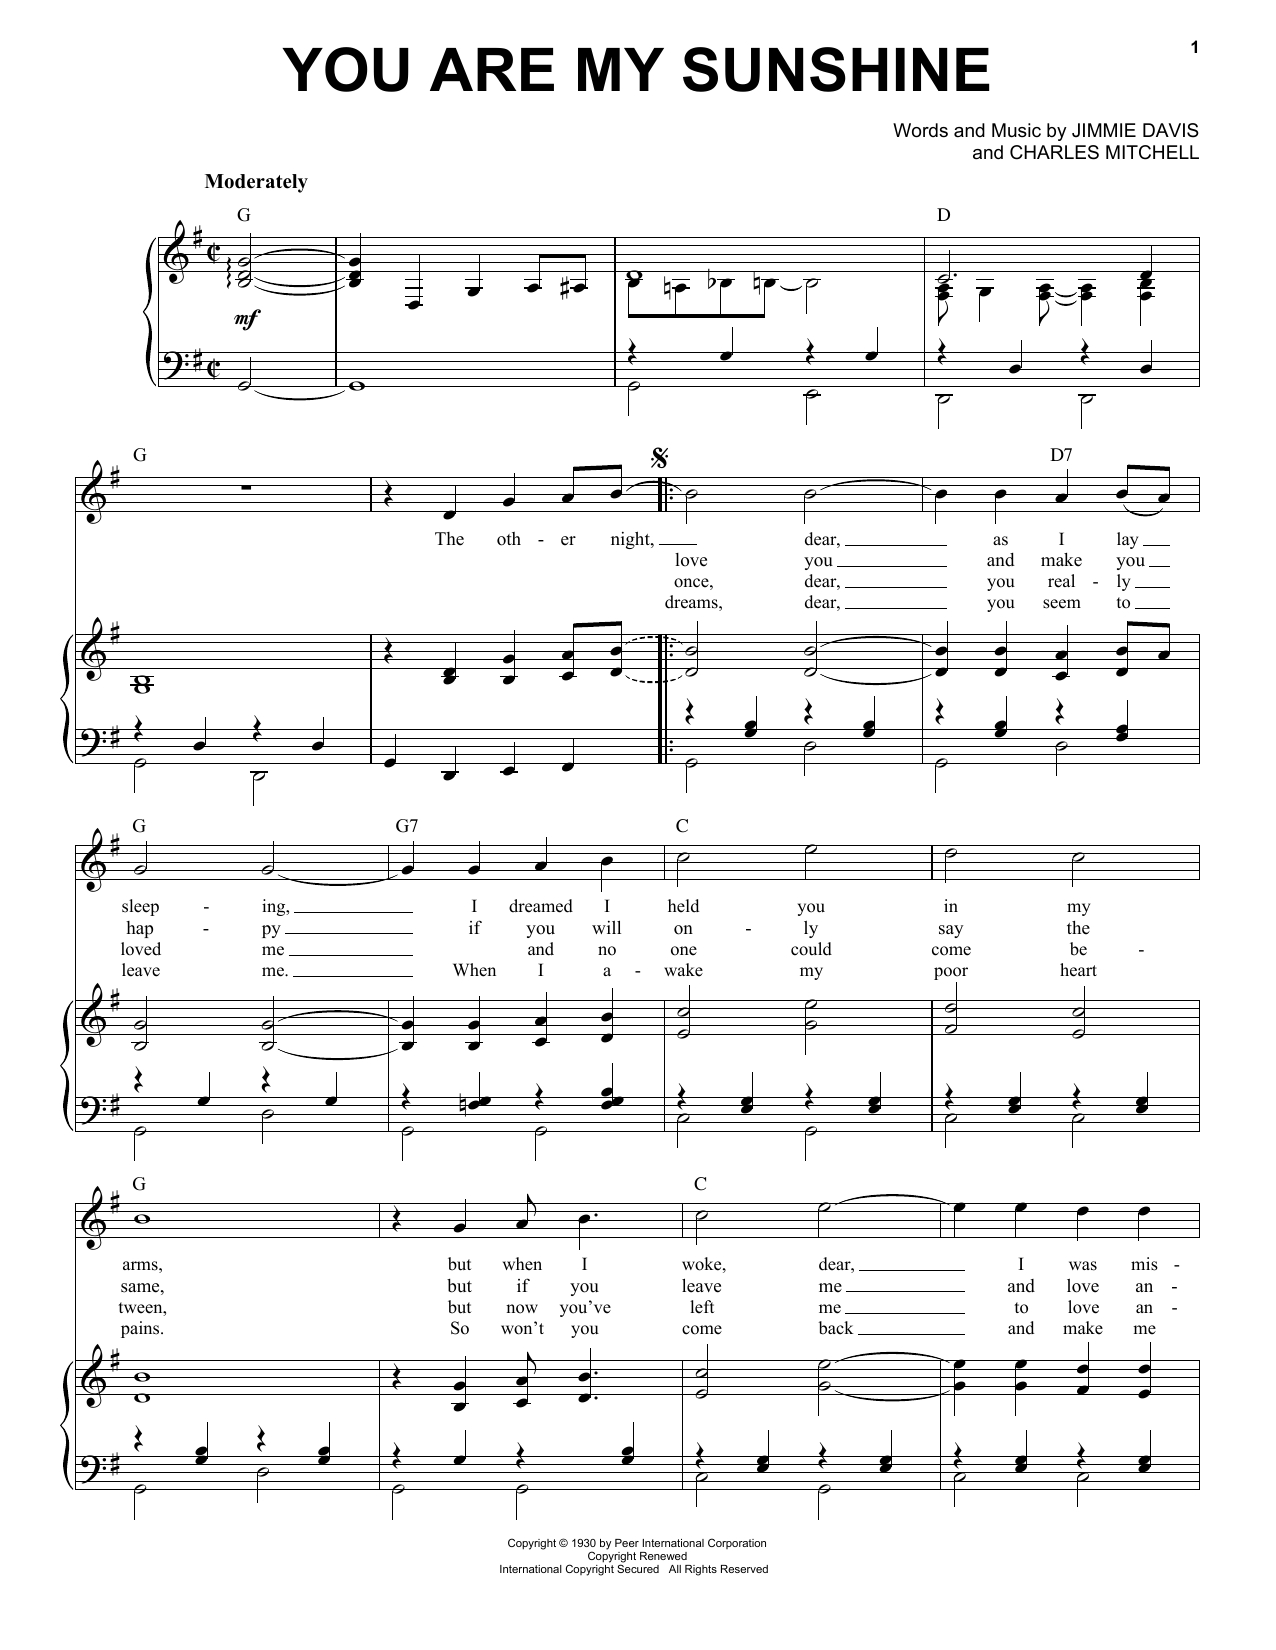 Norman Blake 'you Are My Sunshine' Sheet Music, Notes & Chords In - Free Printable Piano Sheet Music For You Are My Sunshine